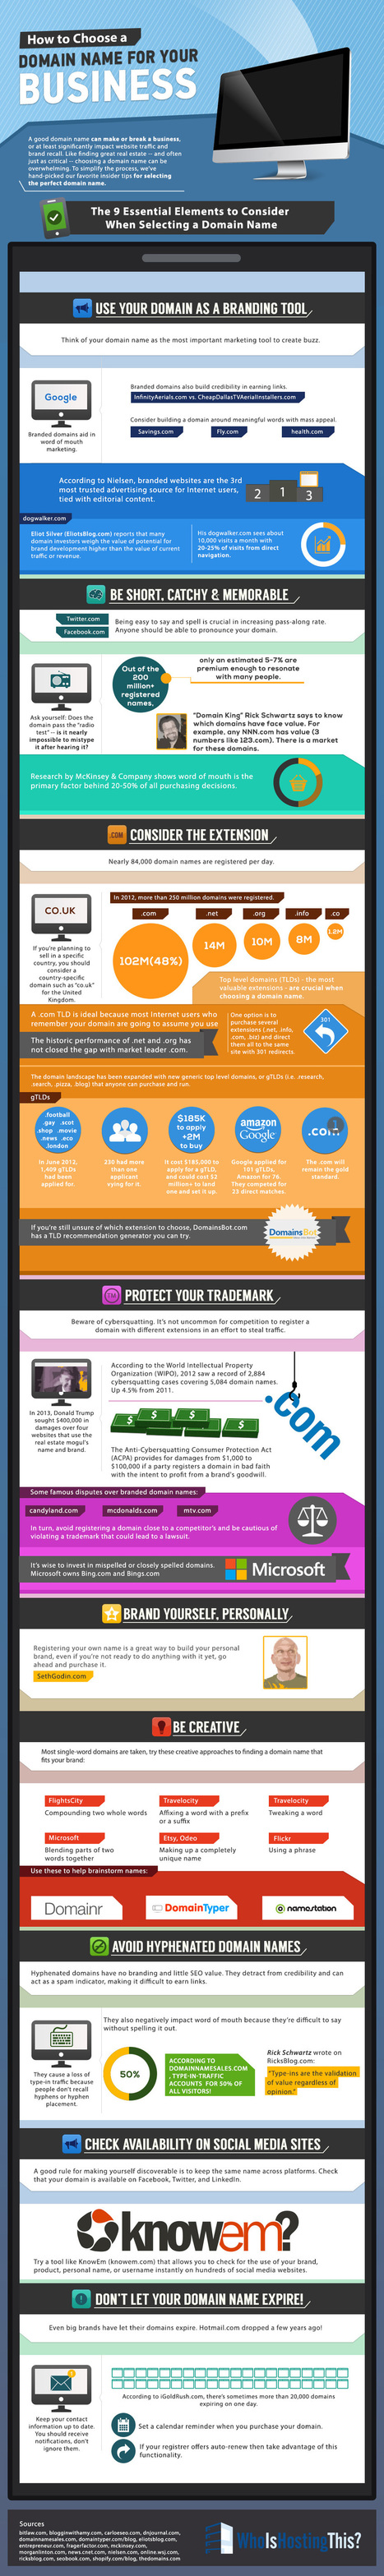 How to Choose a Domain Name [Infographic] | Web Design & Development | Scoop.it